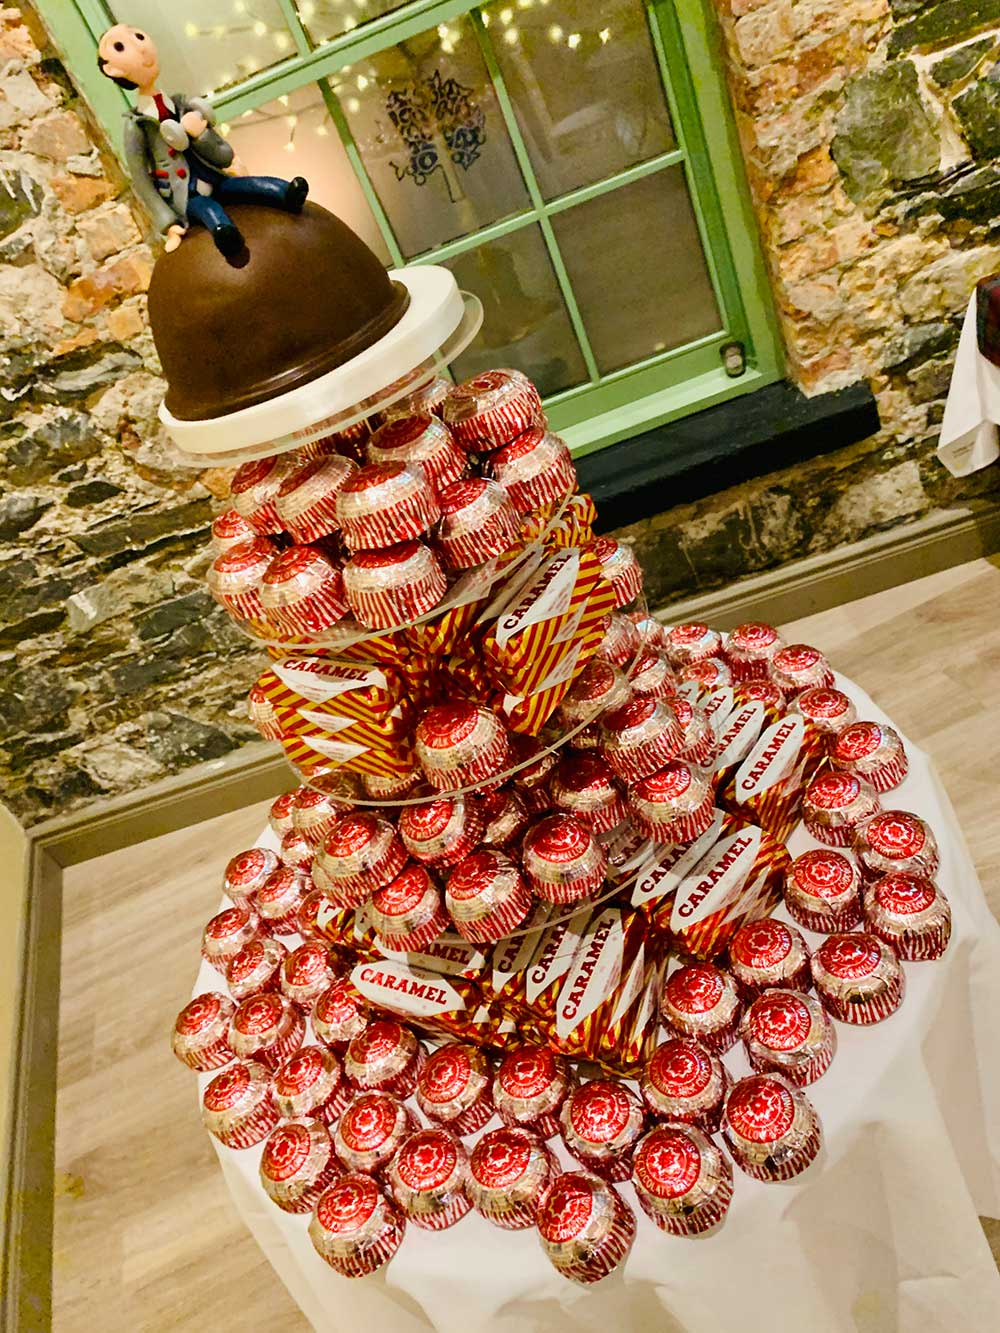 Photo of a wedding cake made from Tunnocks teacakes and caramel wafers